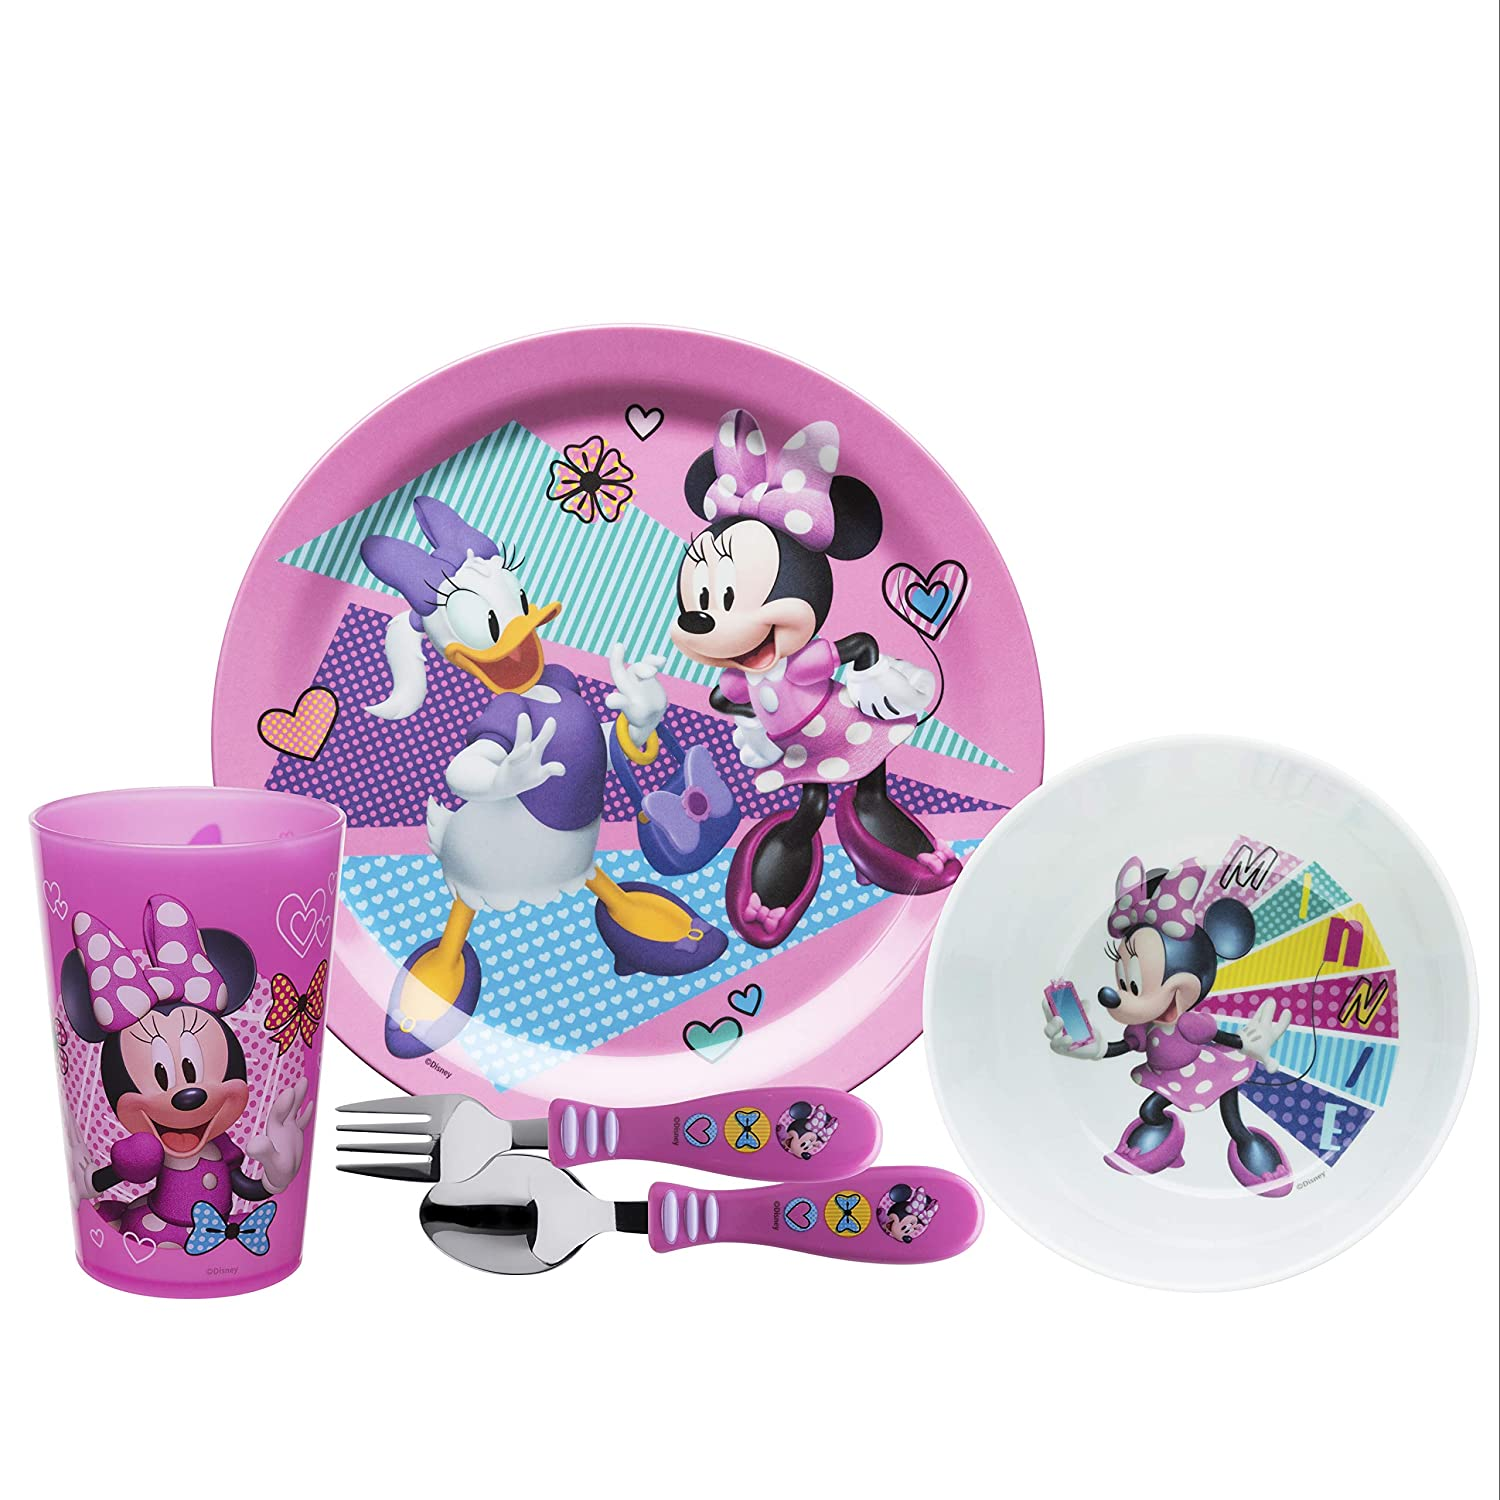 Zak Designs Disney Kids Dinnerware Set Made of Durable Melamine with Fun Character Surface, Include Plate, Bowl, Tumbler and Utensil Tableware is Perfect for Kids (Minnie Mouse, 5 Piece set, BPA Free)